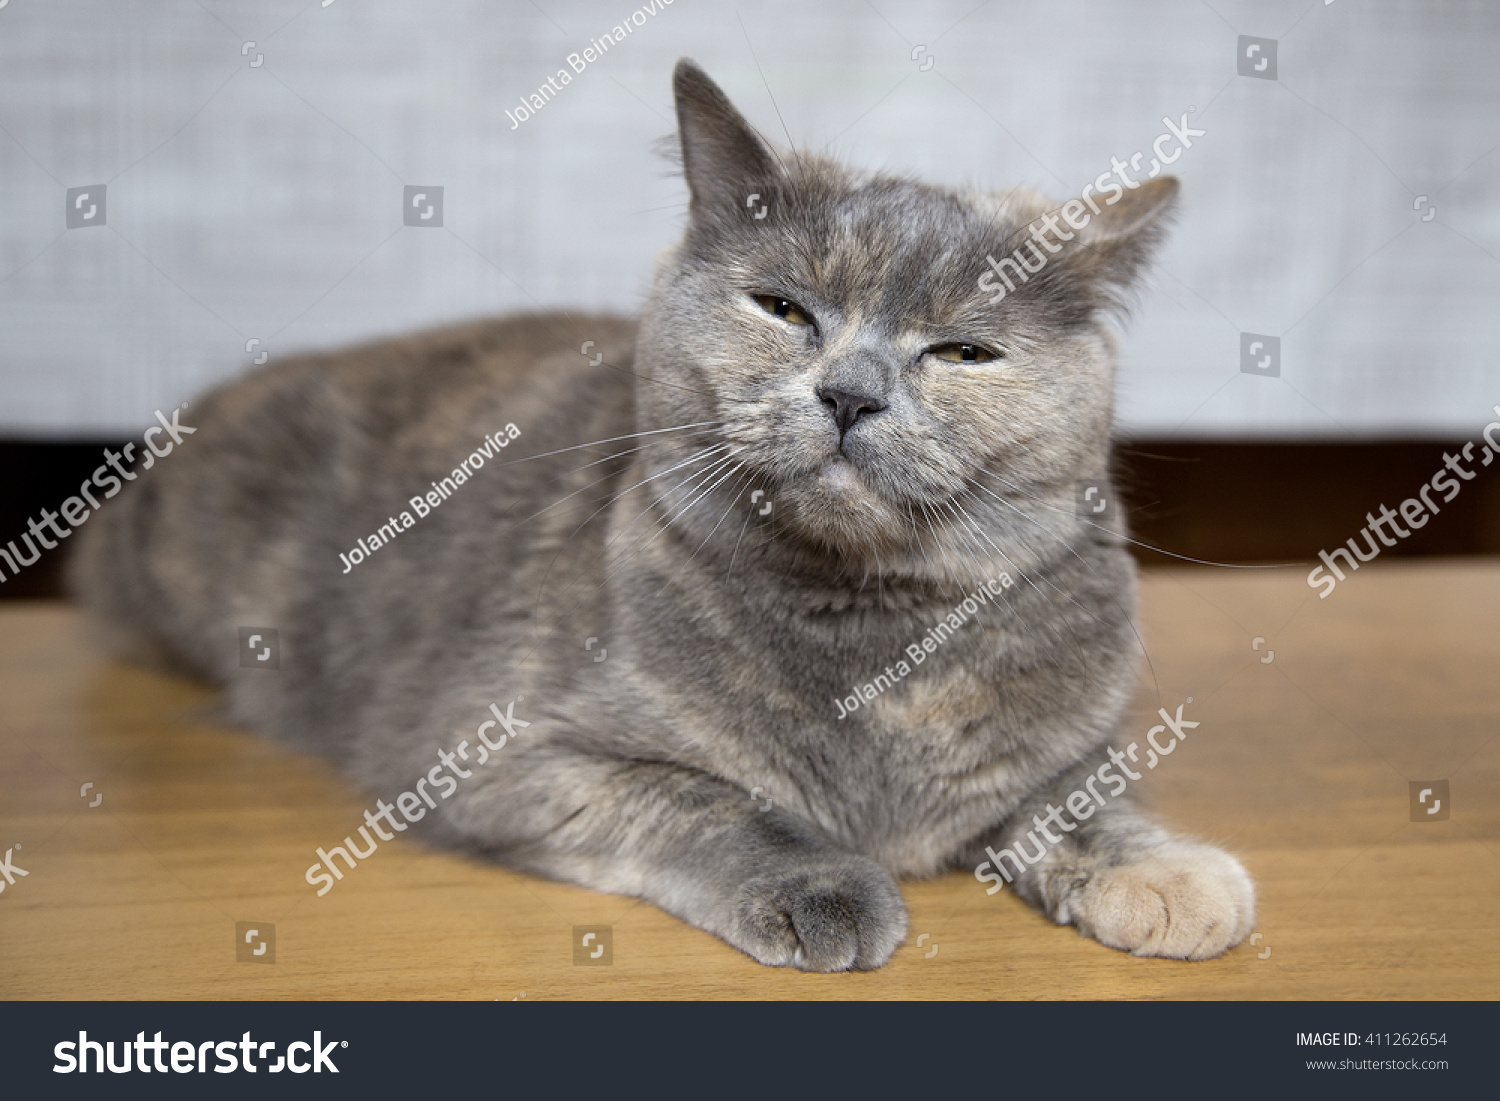 Cat Breed British Shorthair Gray Brown Stock Photo (Royalty Free ...